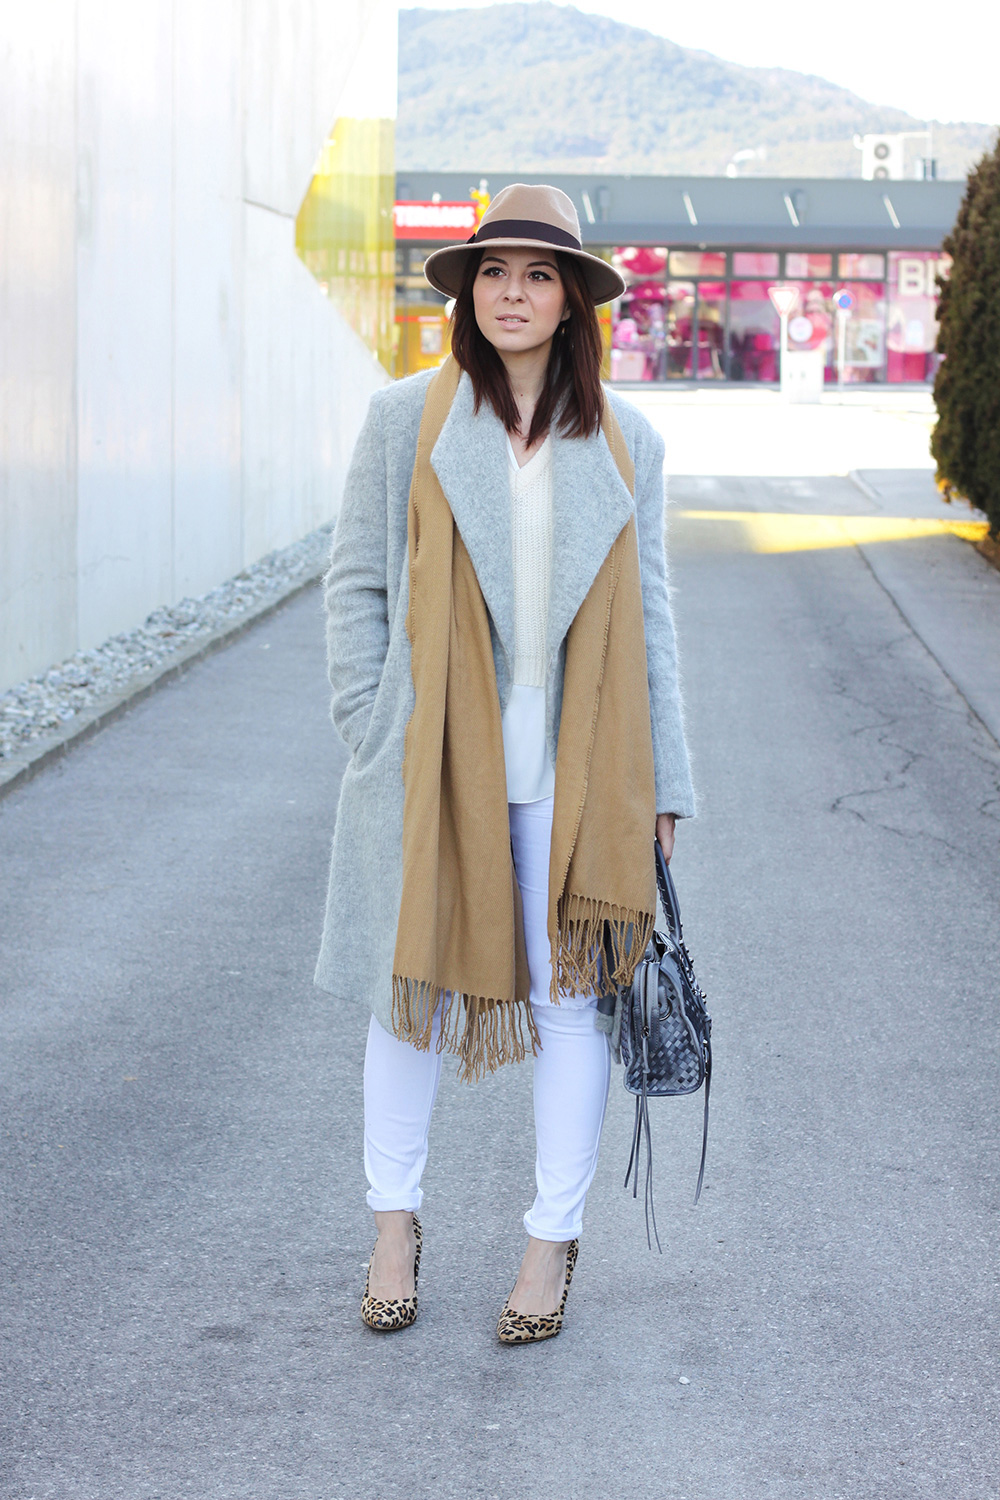 who is mocca, fashionblog, tirol, mode, beauty, tirolerin, new look, grauer mantel, leo pumps, forever21 schal camel, motorcycle bag balenciaga oasap lookalike, fedora braun beige primark, ootd weiss beige, whoismocca.com